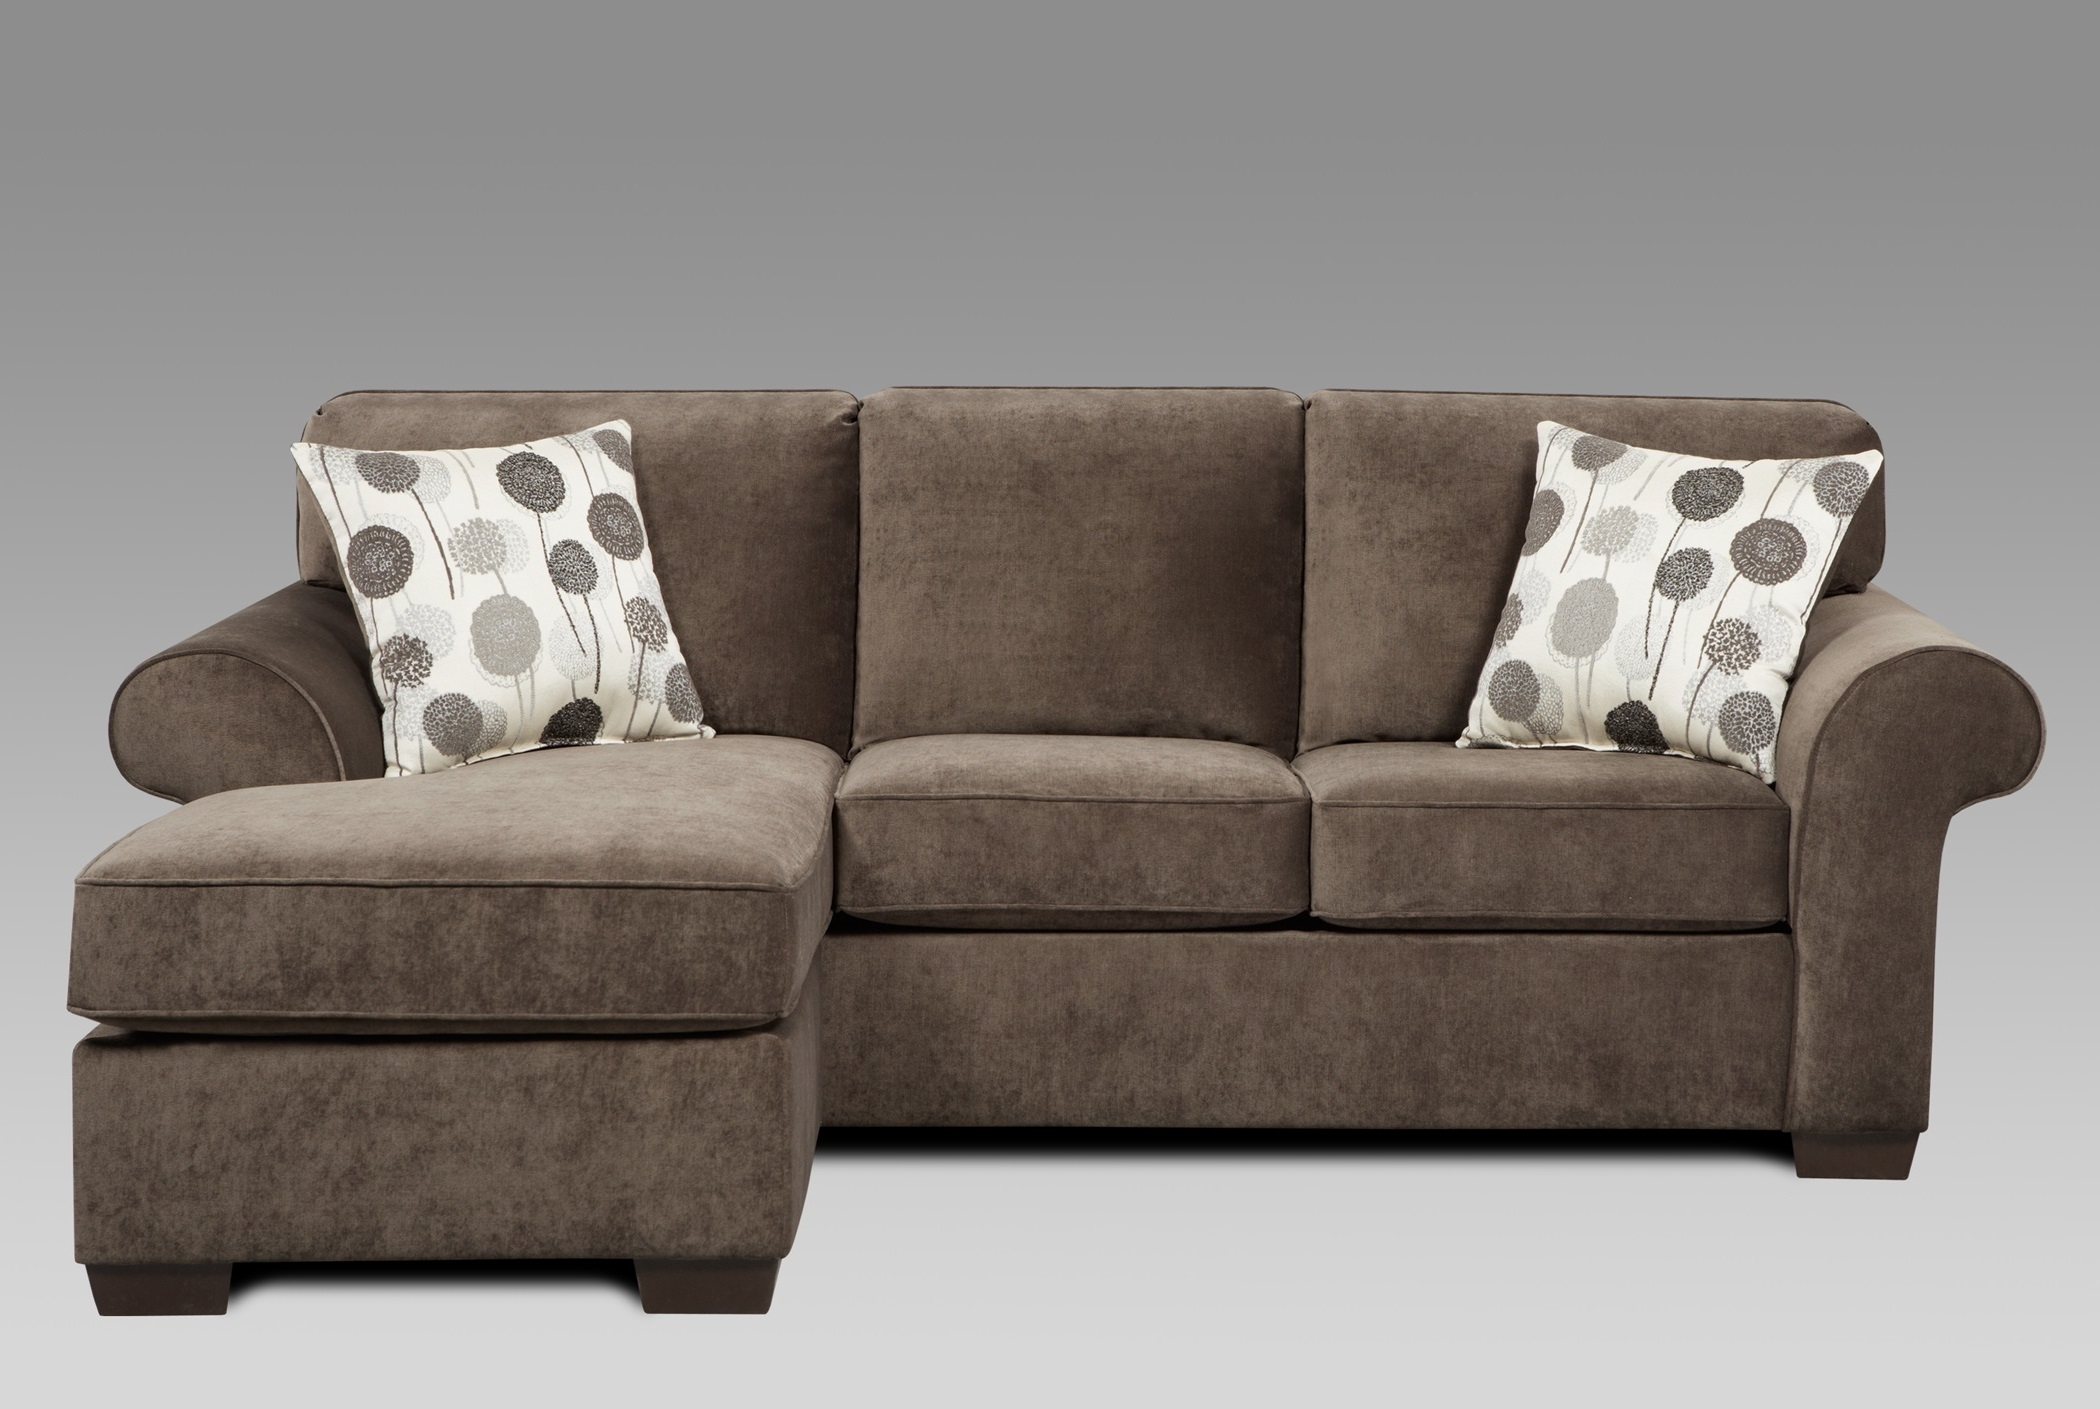 Elizabeth Ash fabric Sectional Sofa and Loveseat Set w/ Pillows  Made In USA Item No LAF5300EA : loveseat sectional sofa - Sectionals, Sofas & Couches